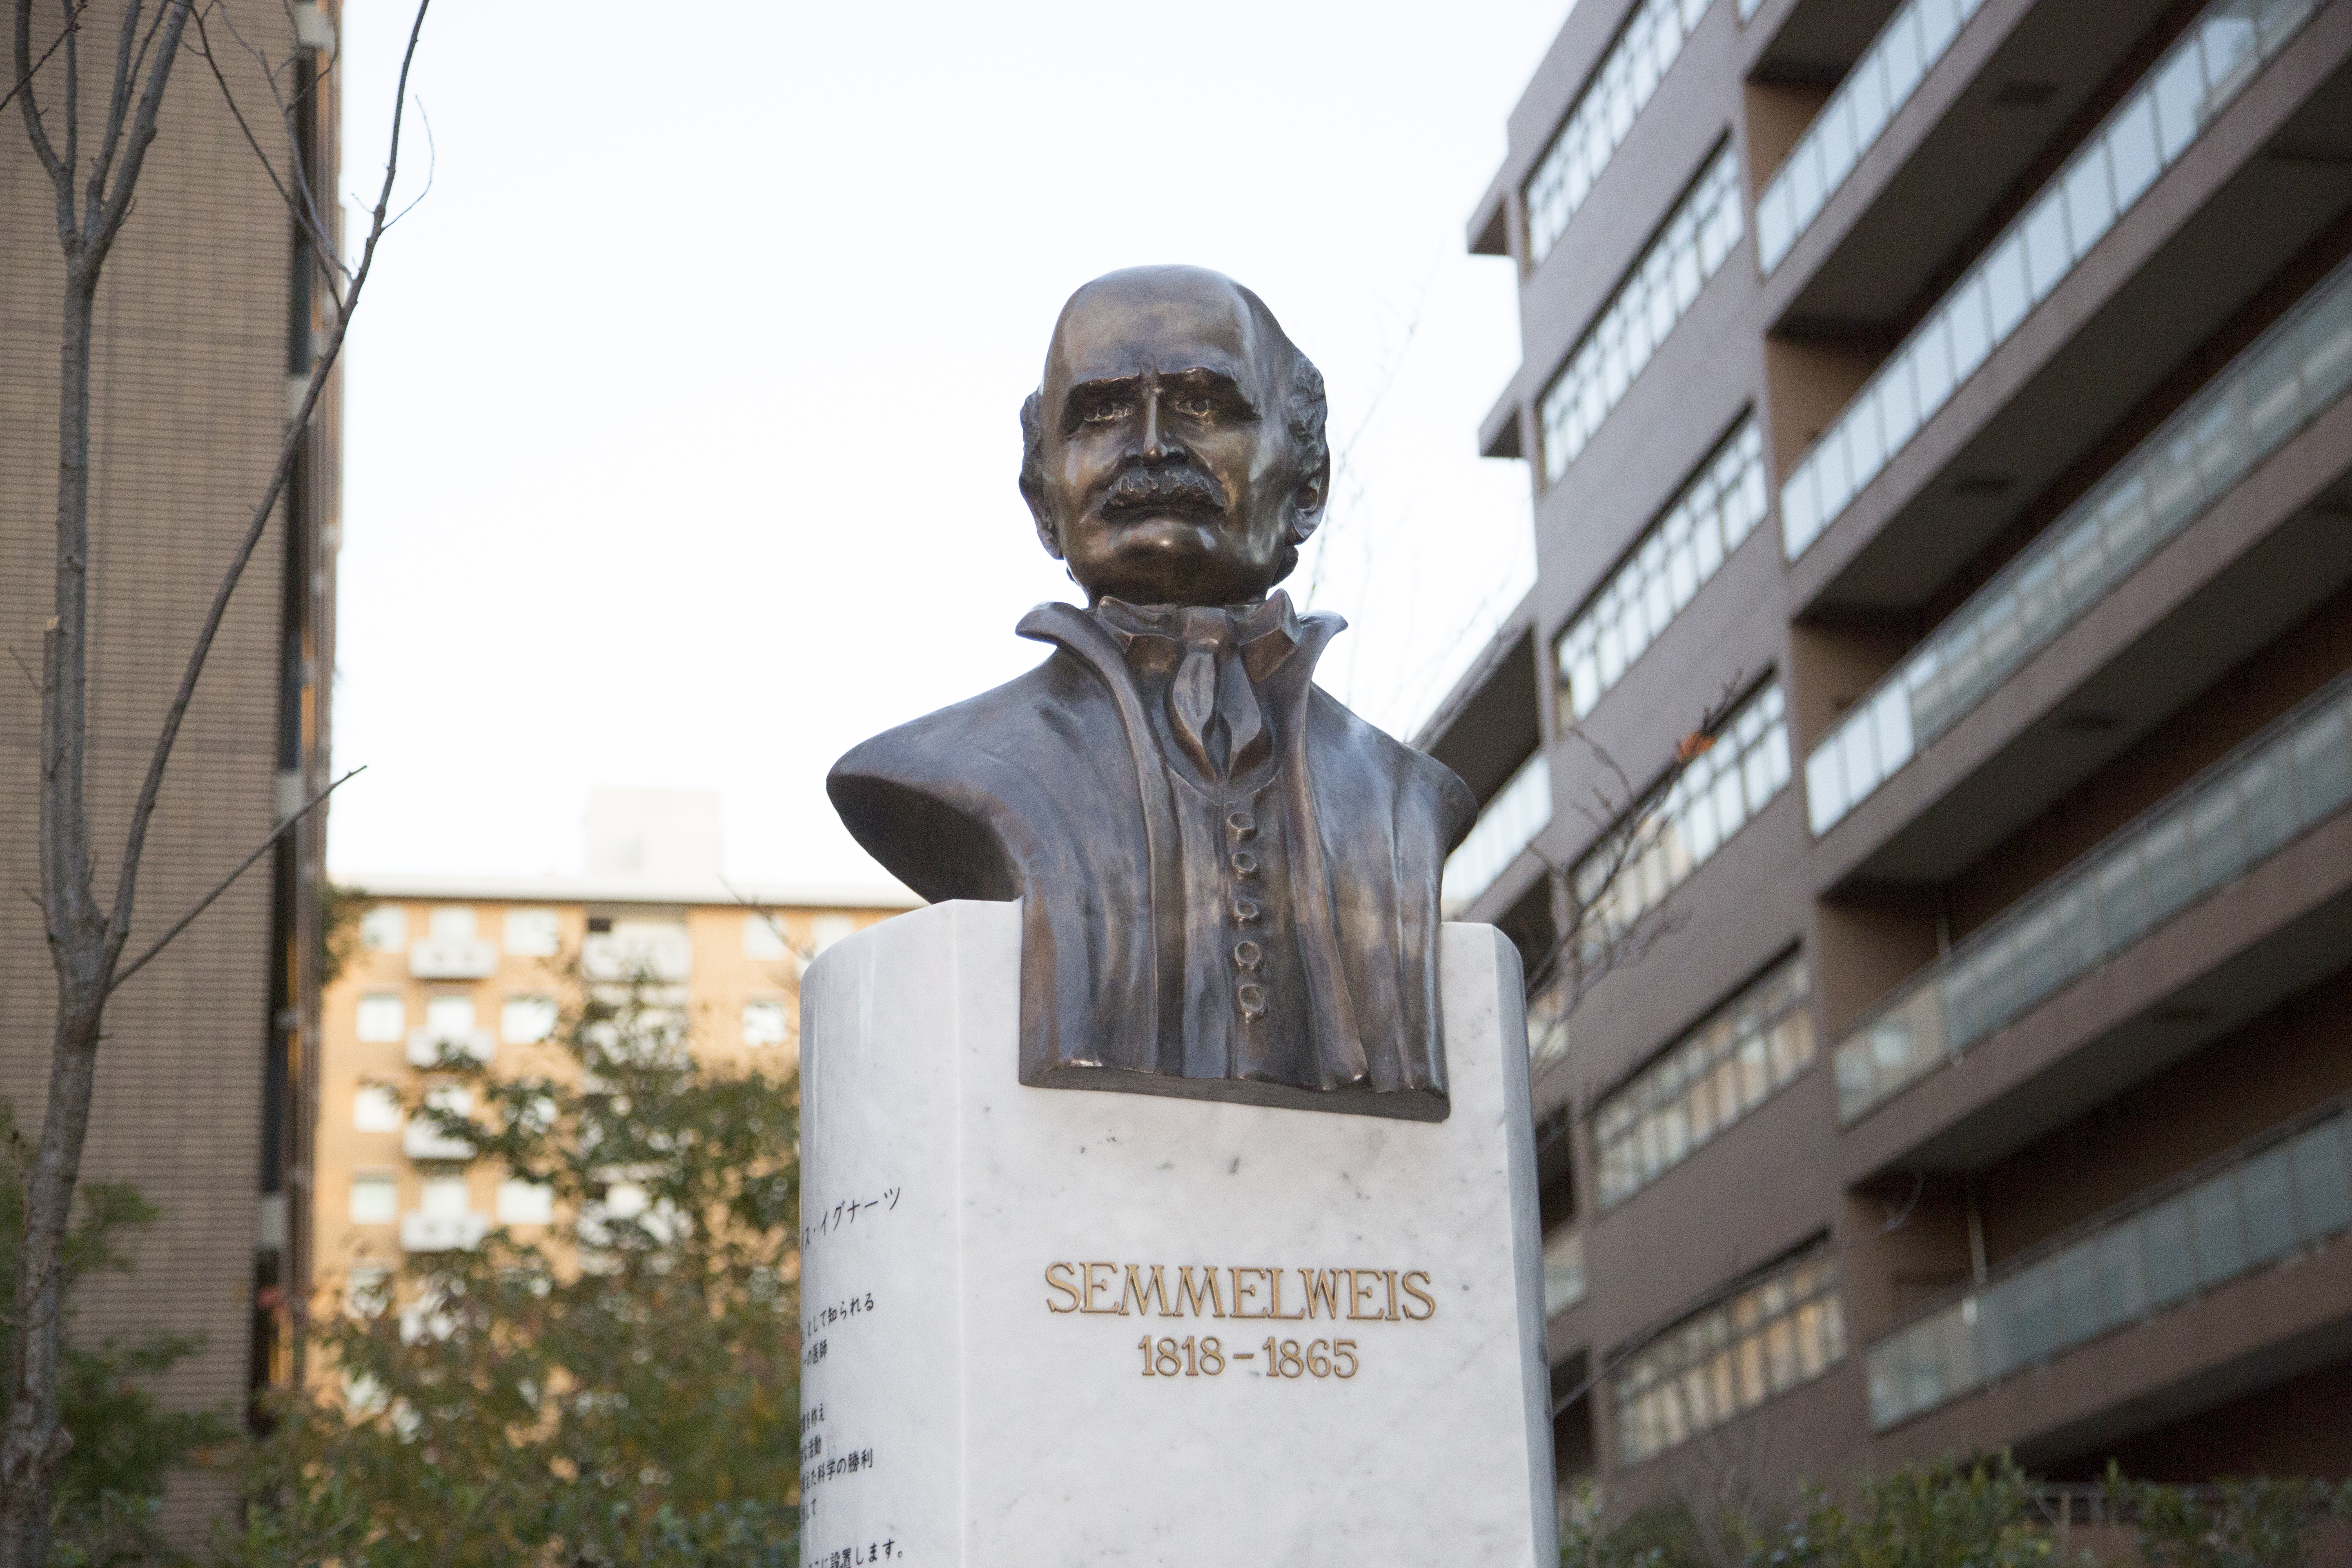 [Event report] Commemorating the 200th Anniversary of the Birth of Ignác Semmelweis at the Semmelweis Memorial Bust Unveiling Ceremony (November 14, 2018)